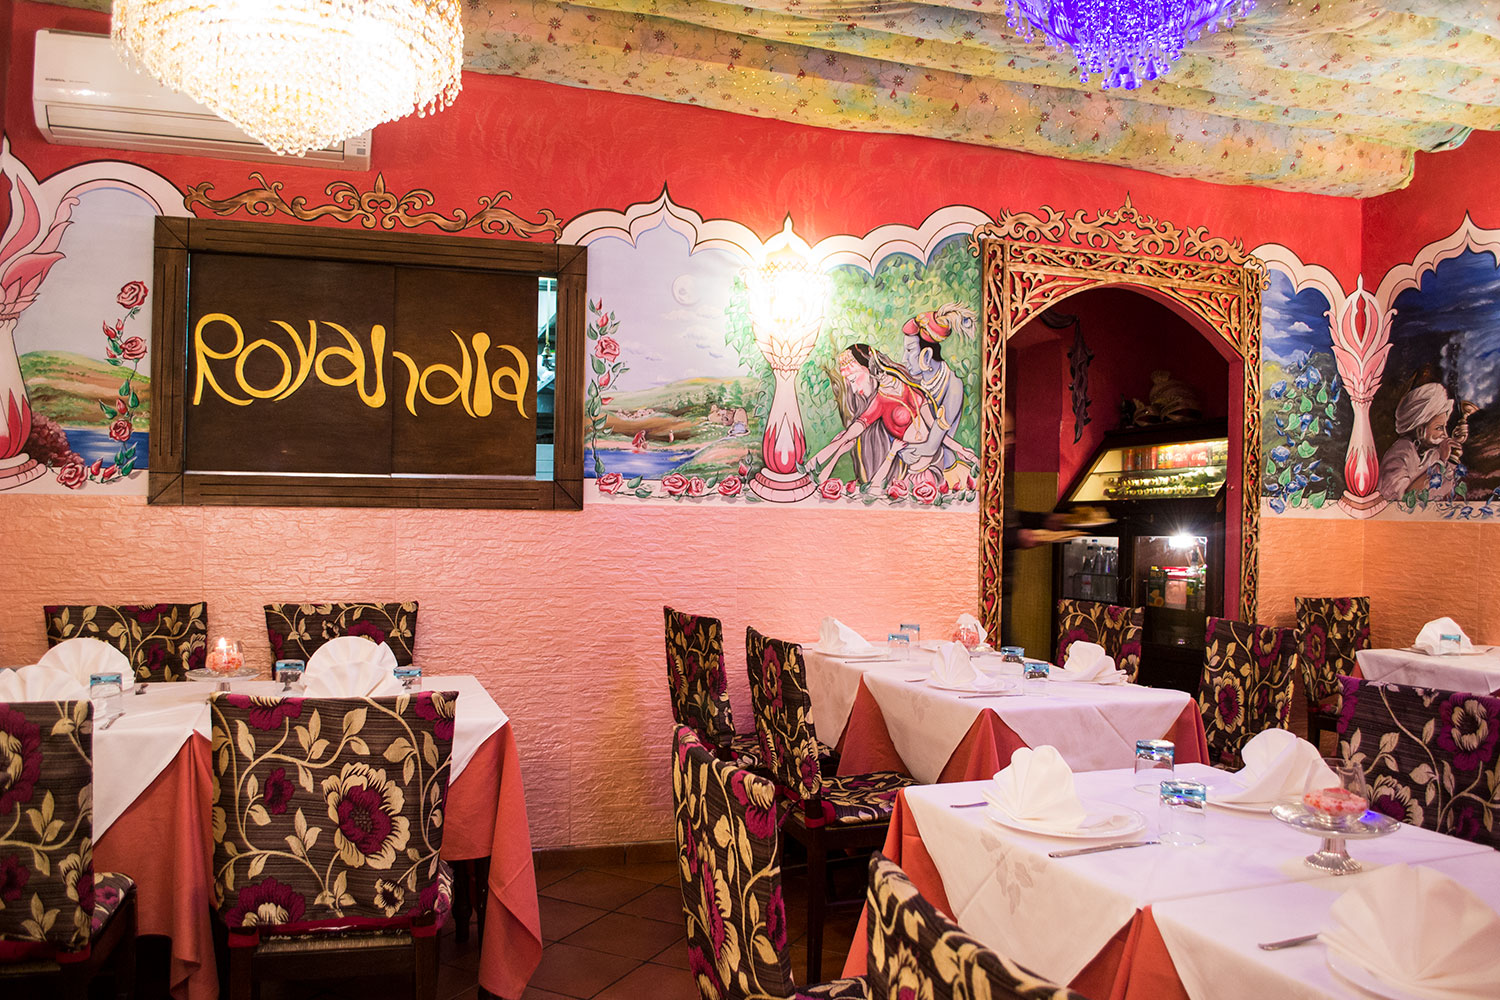 Royal India Firenze